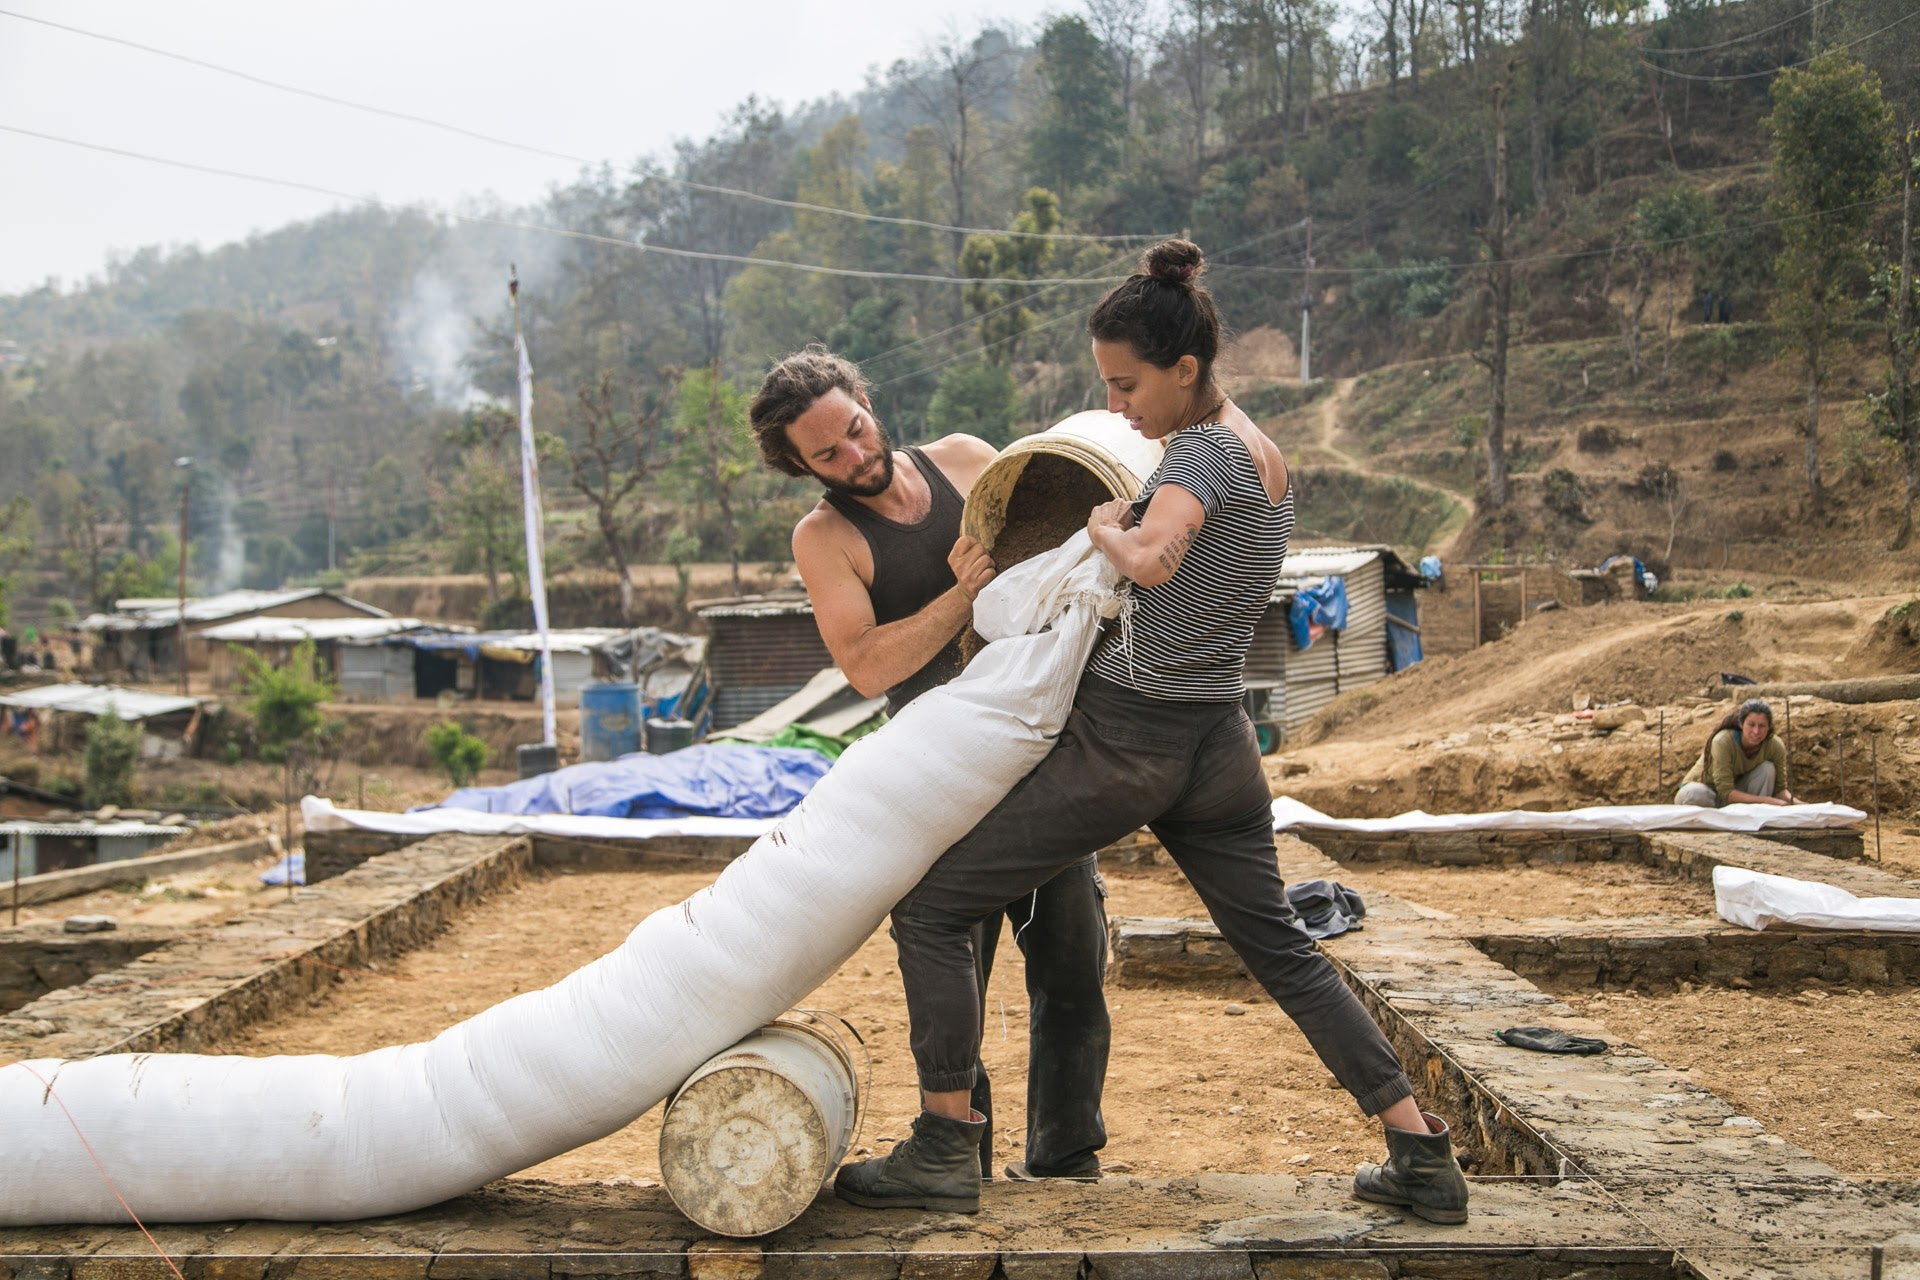 From November 4th-13th, Conscious Impact will host its first ever official Natural Building Course: Earthbag Dome Construction. Join us to learn to build your own home in just 10 days! Photo by Jonathan H. Lee